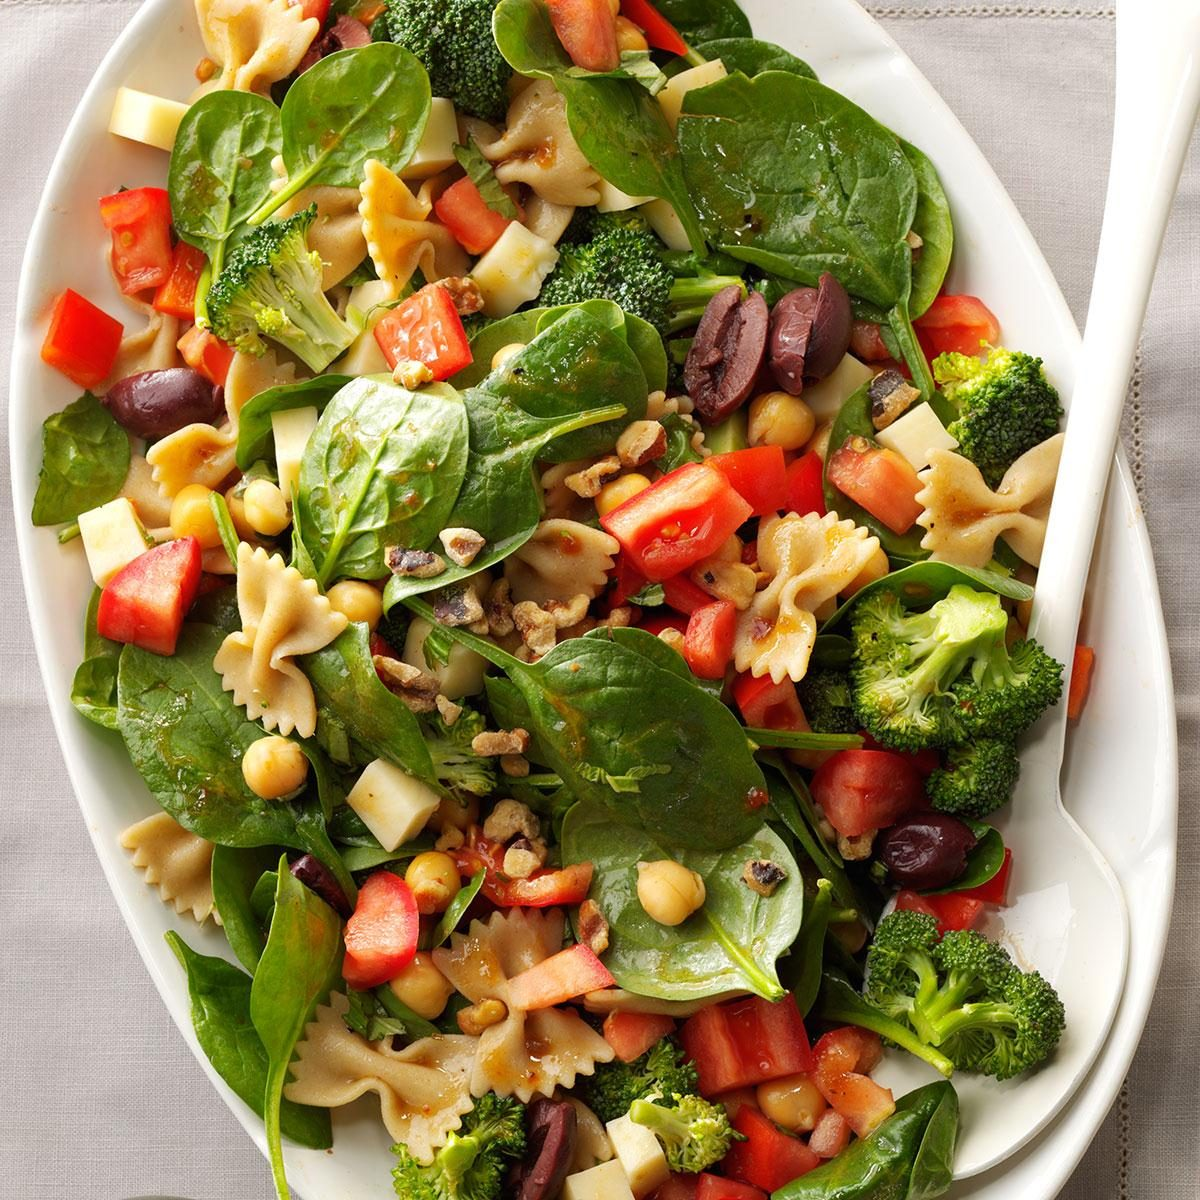 Montana: Bow Tie & Spinach Salad